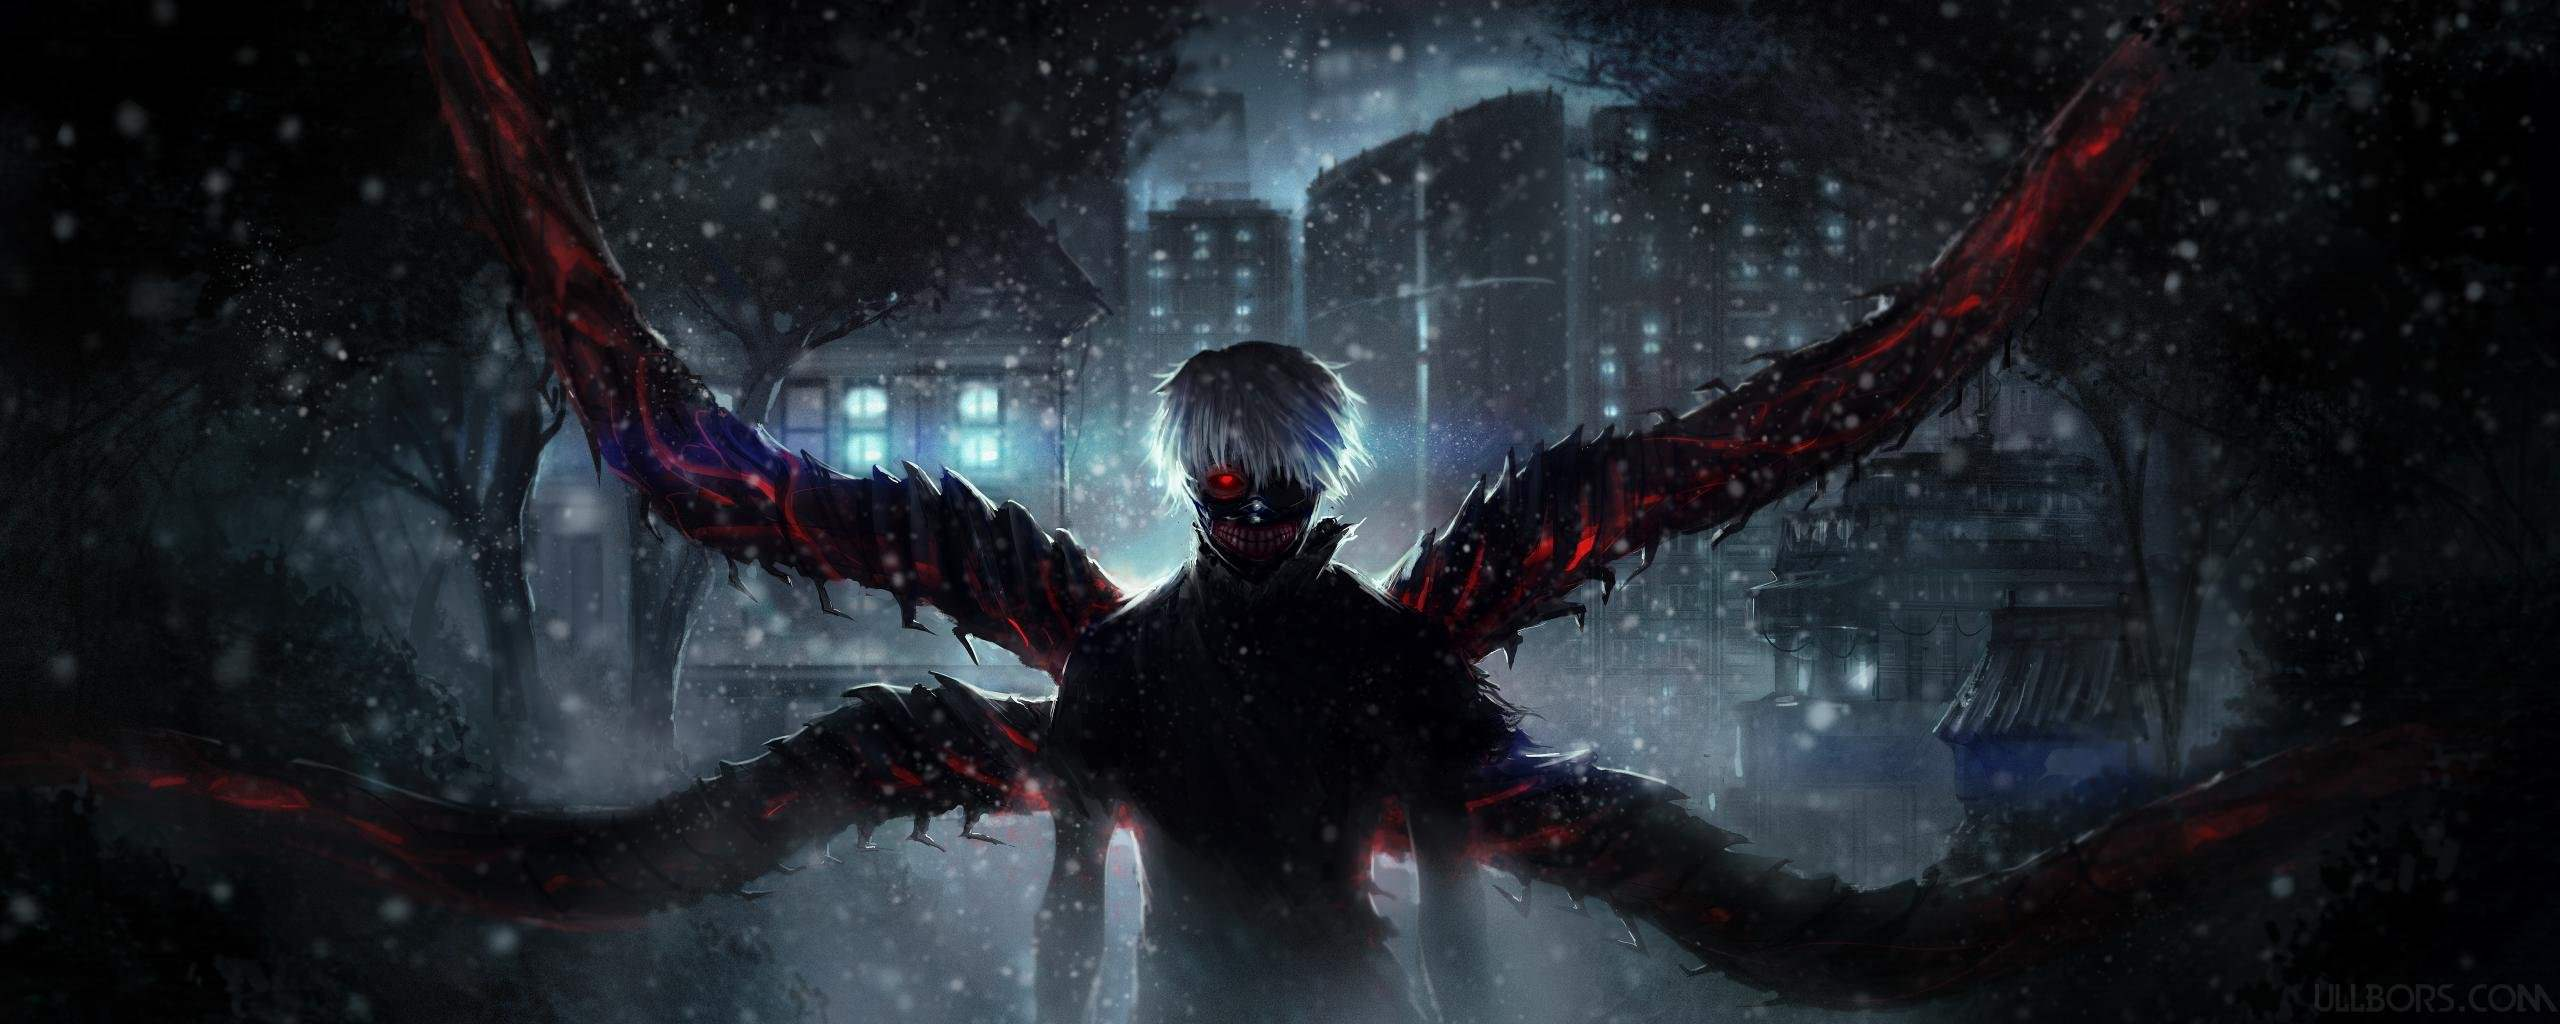 Awesome Tokyo Ghoul Wallpapers Top Free Awesome Tokyo Ghoul